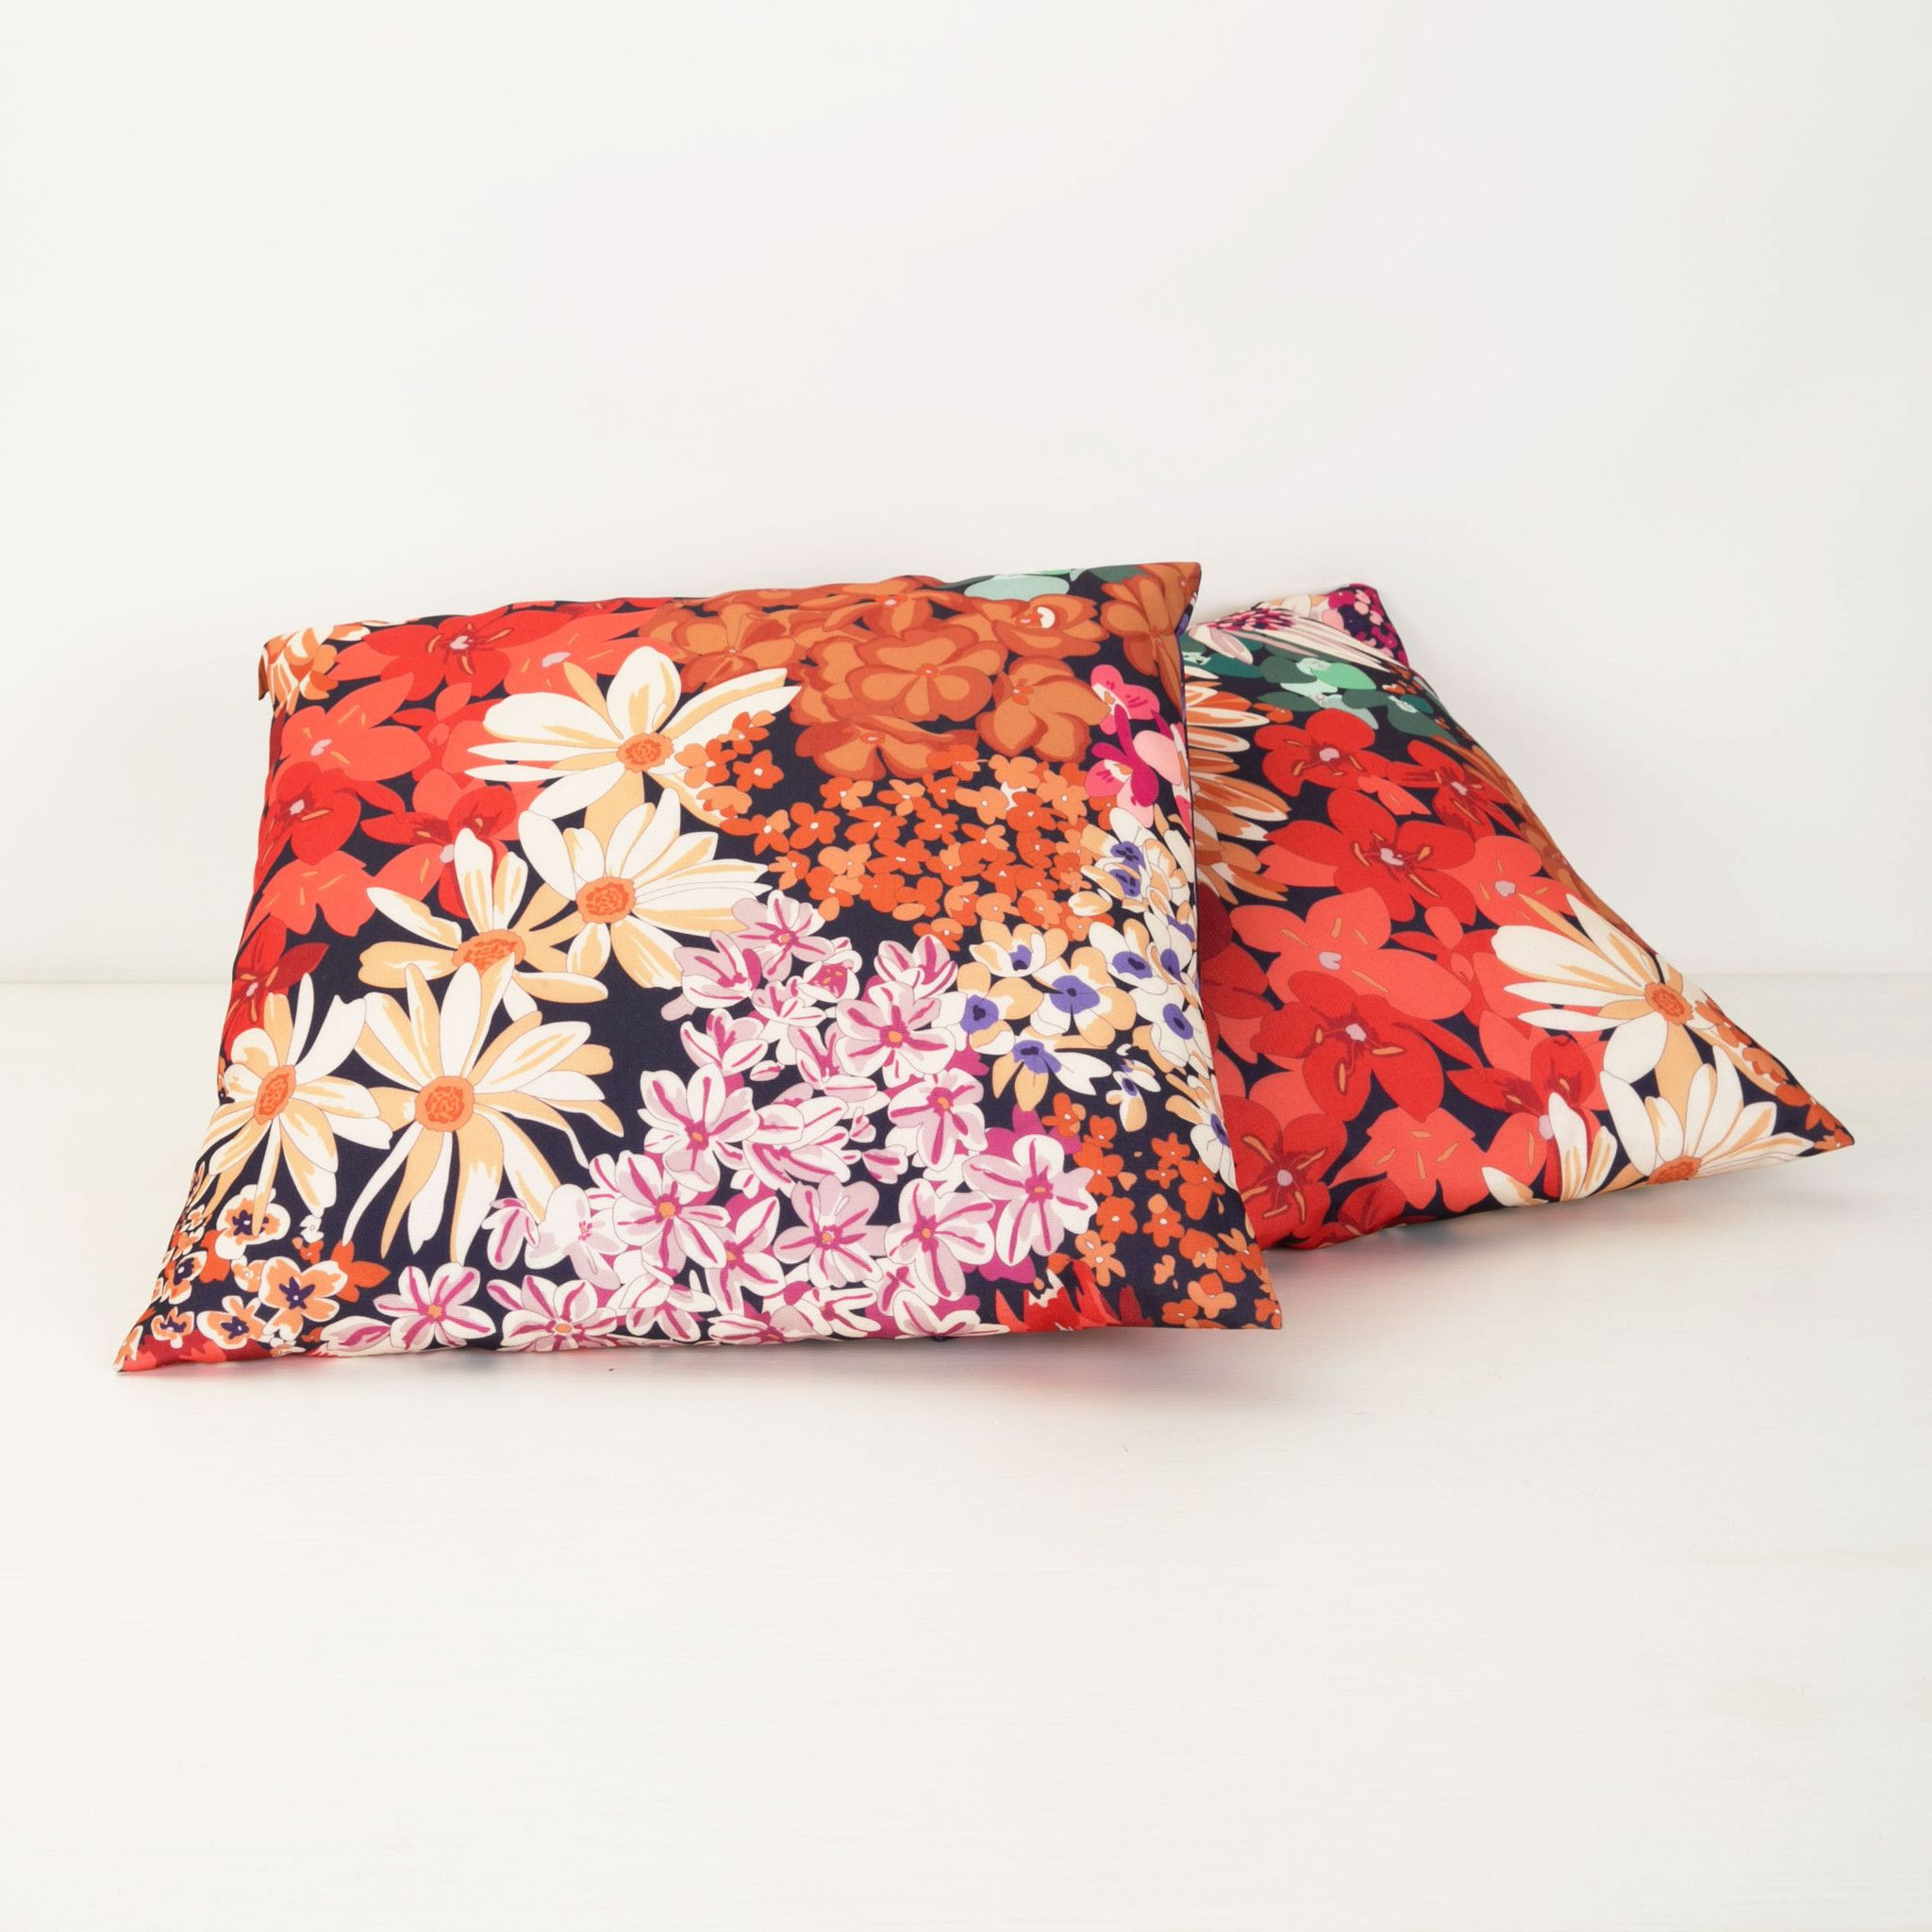 pin missonihome energy by and life pillow missoni patterns decorate radiate colorful pillows